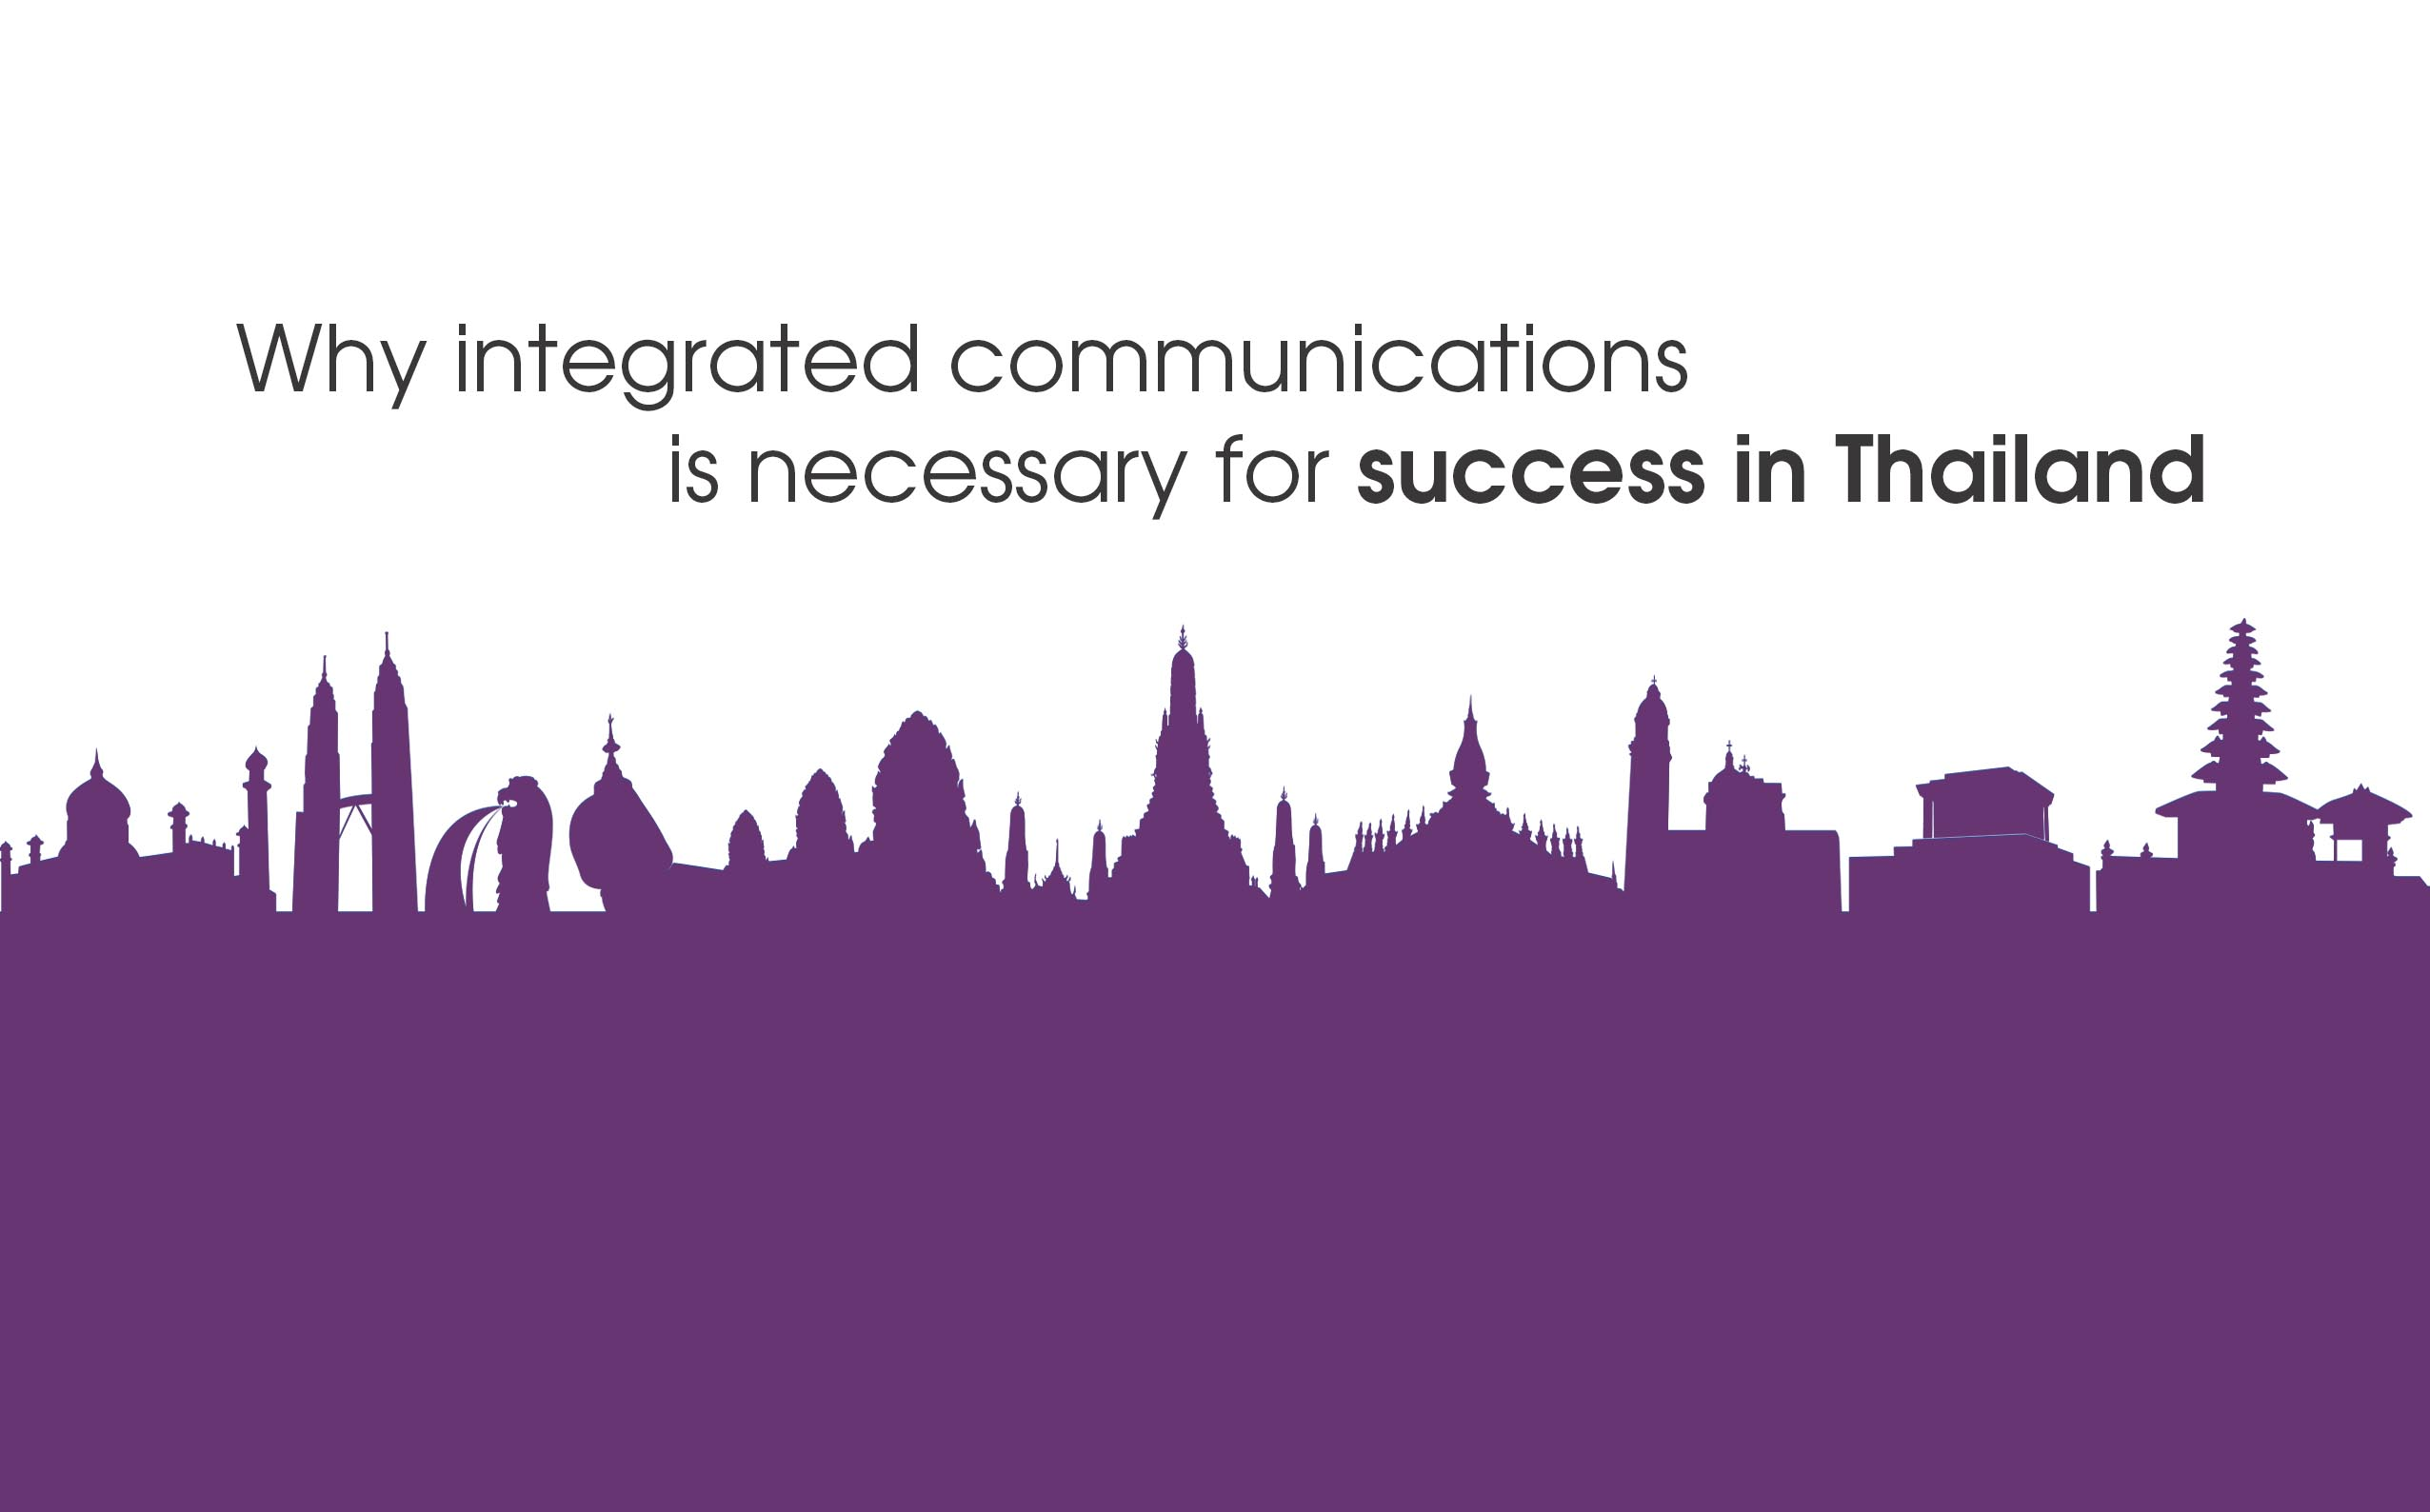 Why integrated communications is necessary for success in Thailand